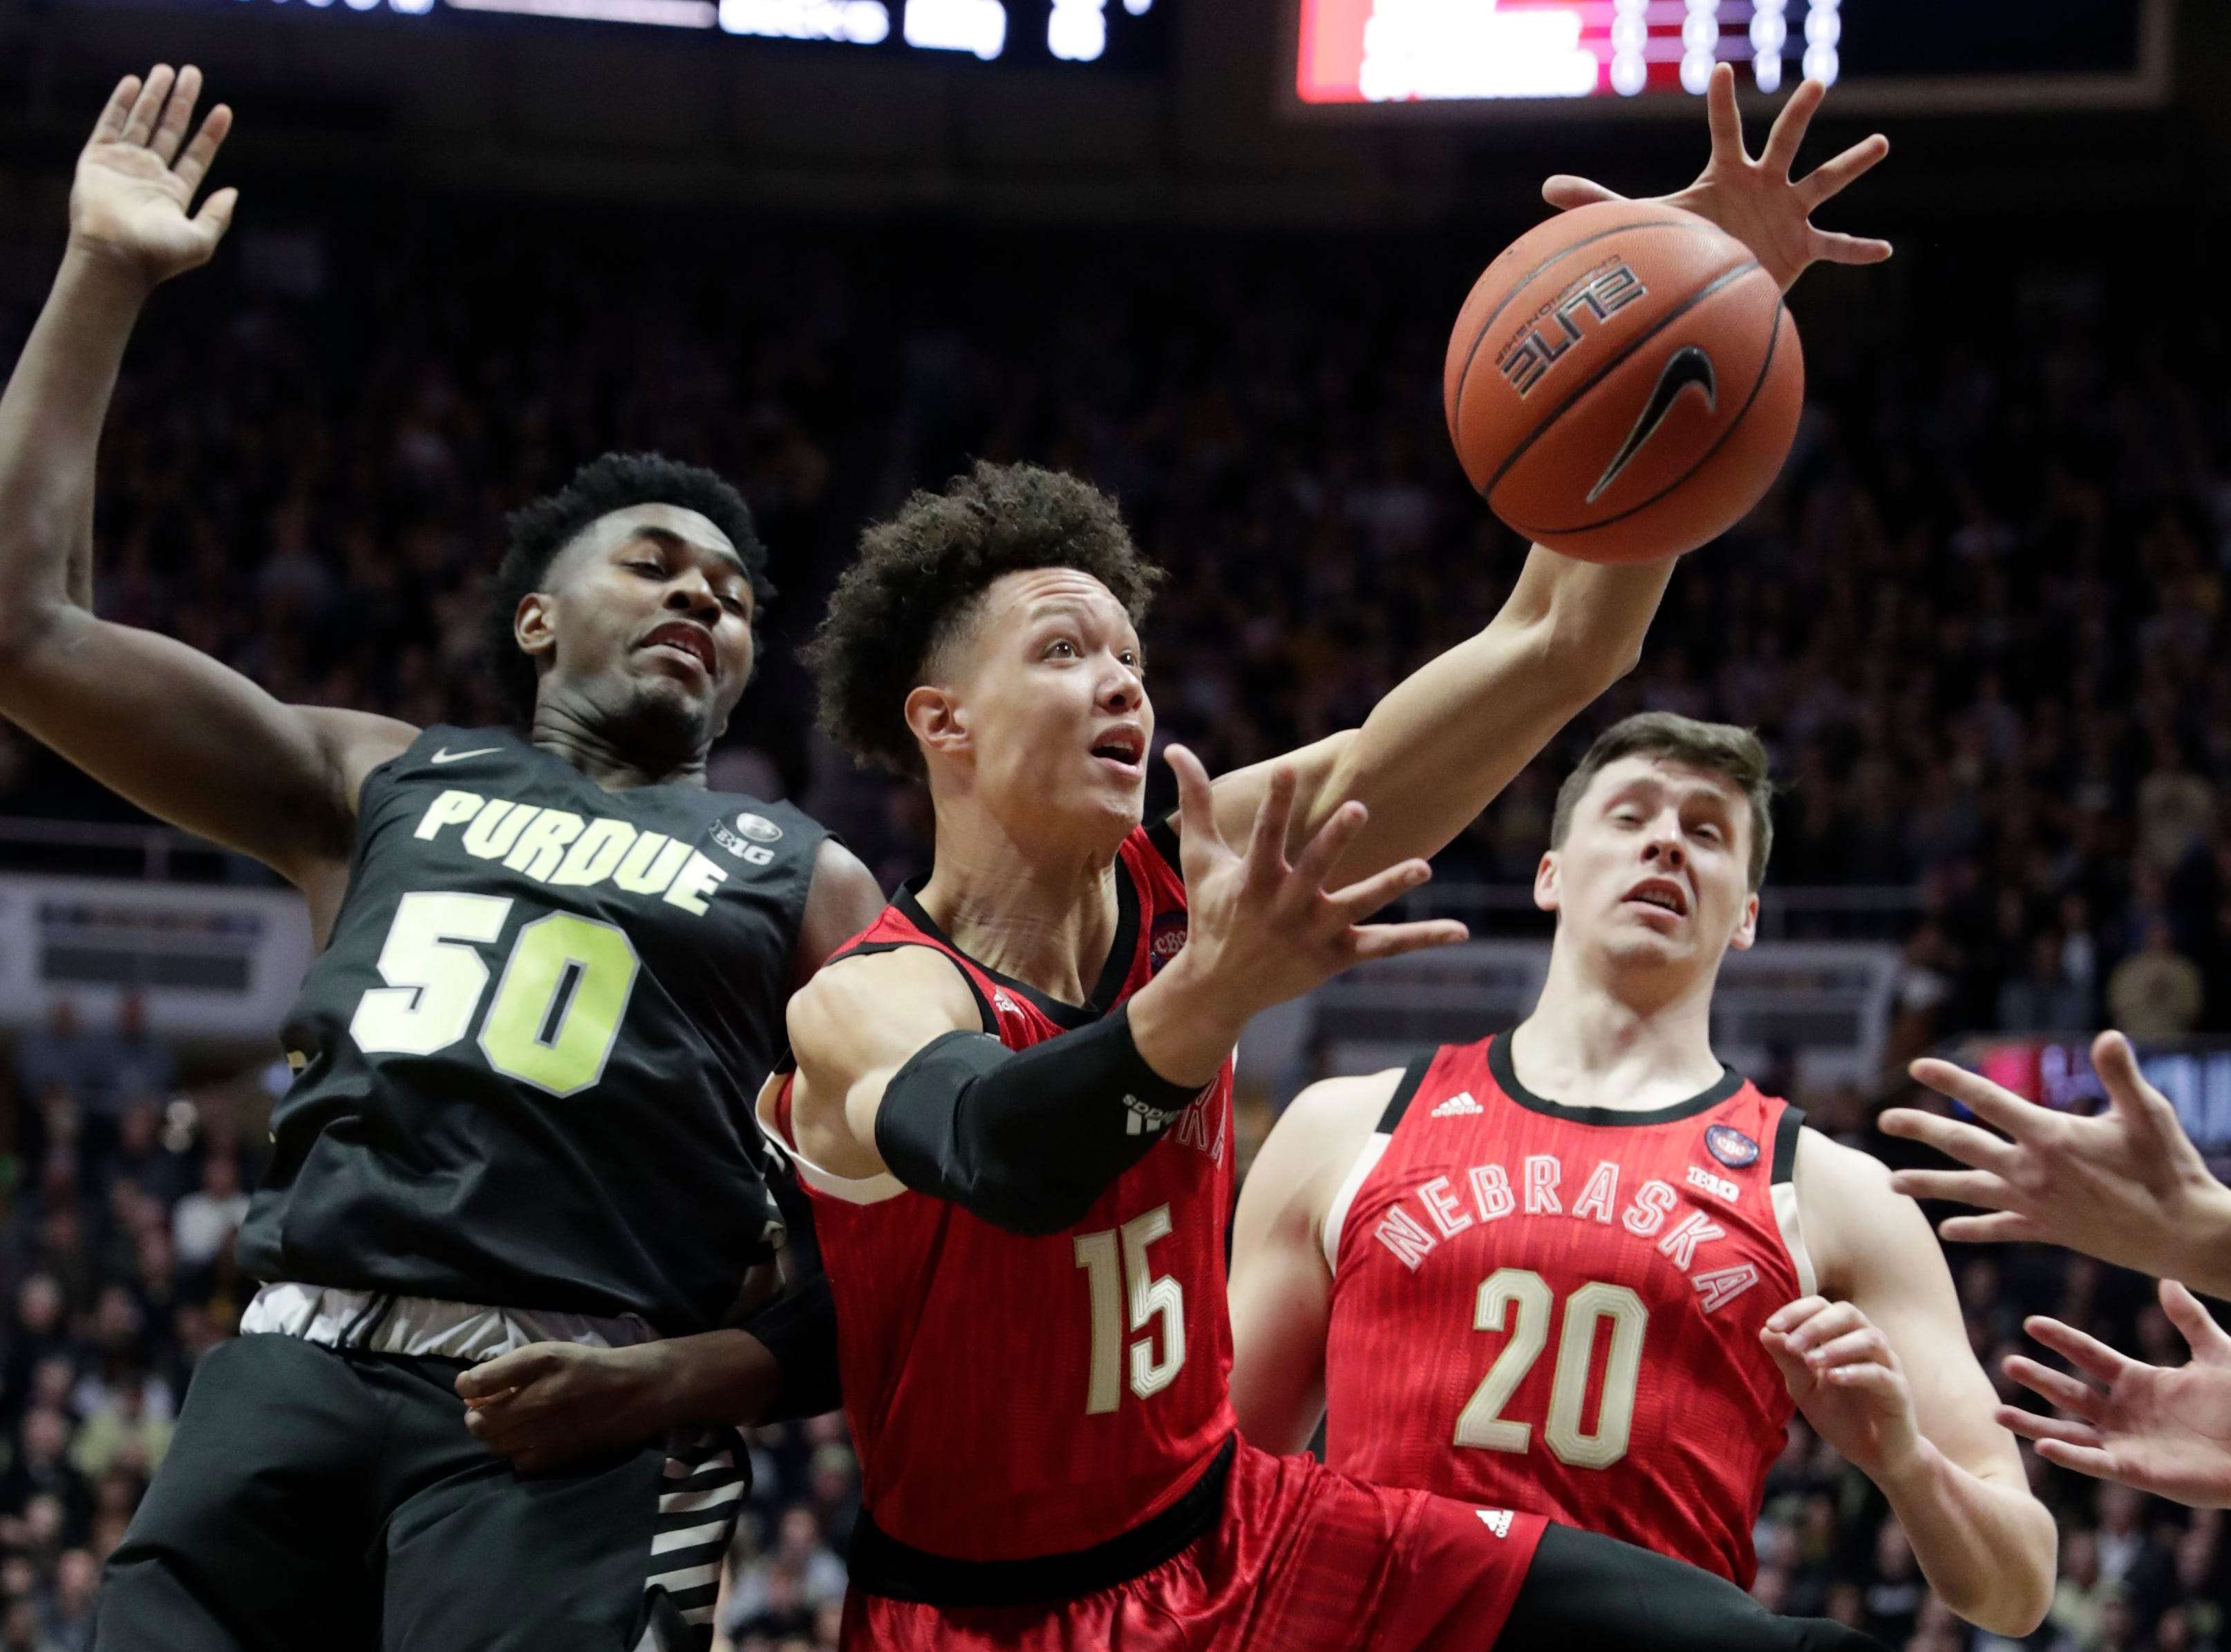 Nebraska forward Isaiah Roby (15) grabs a rebound in front of Purdue forward Trevion Williams (50) and Nebraska forward Tanner Borchardt (20) during the first half of an NCAA college basketball game in West Lafayette, Ind.